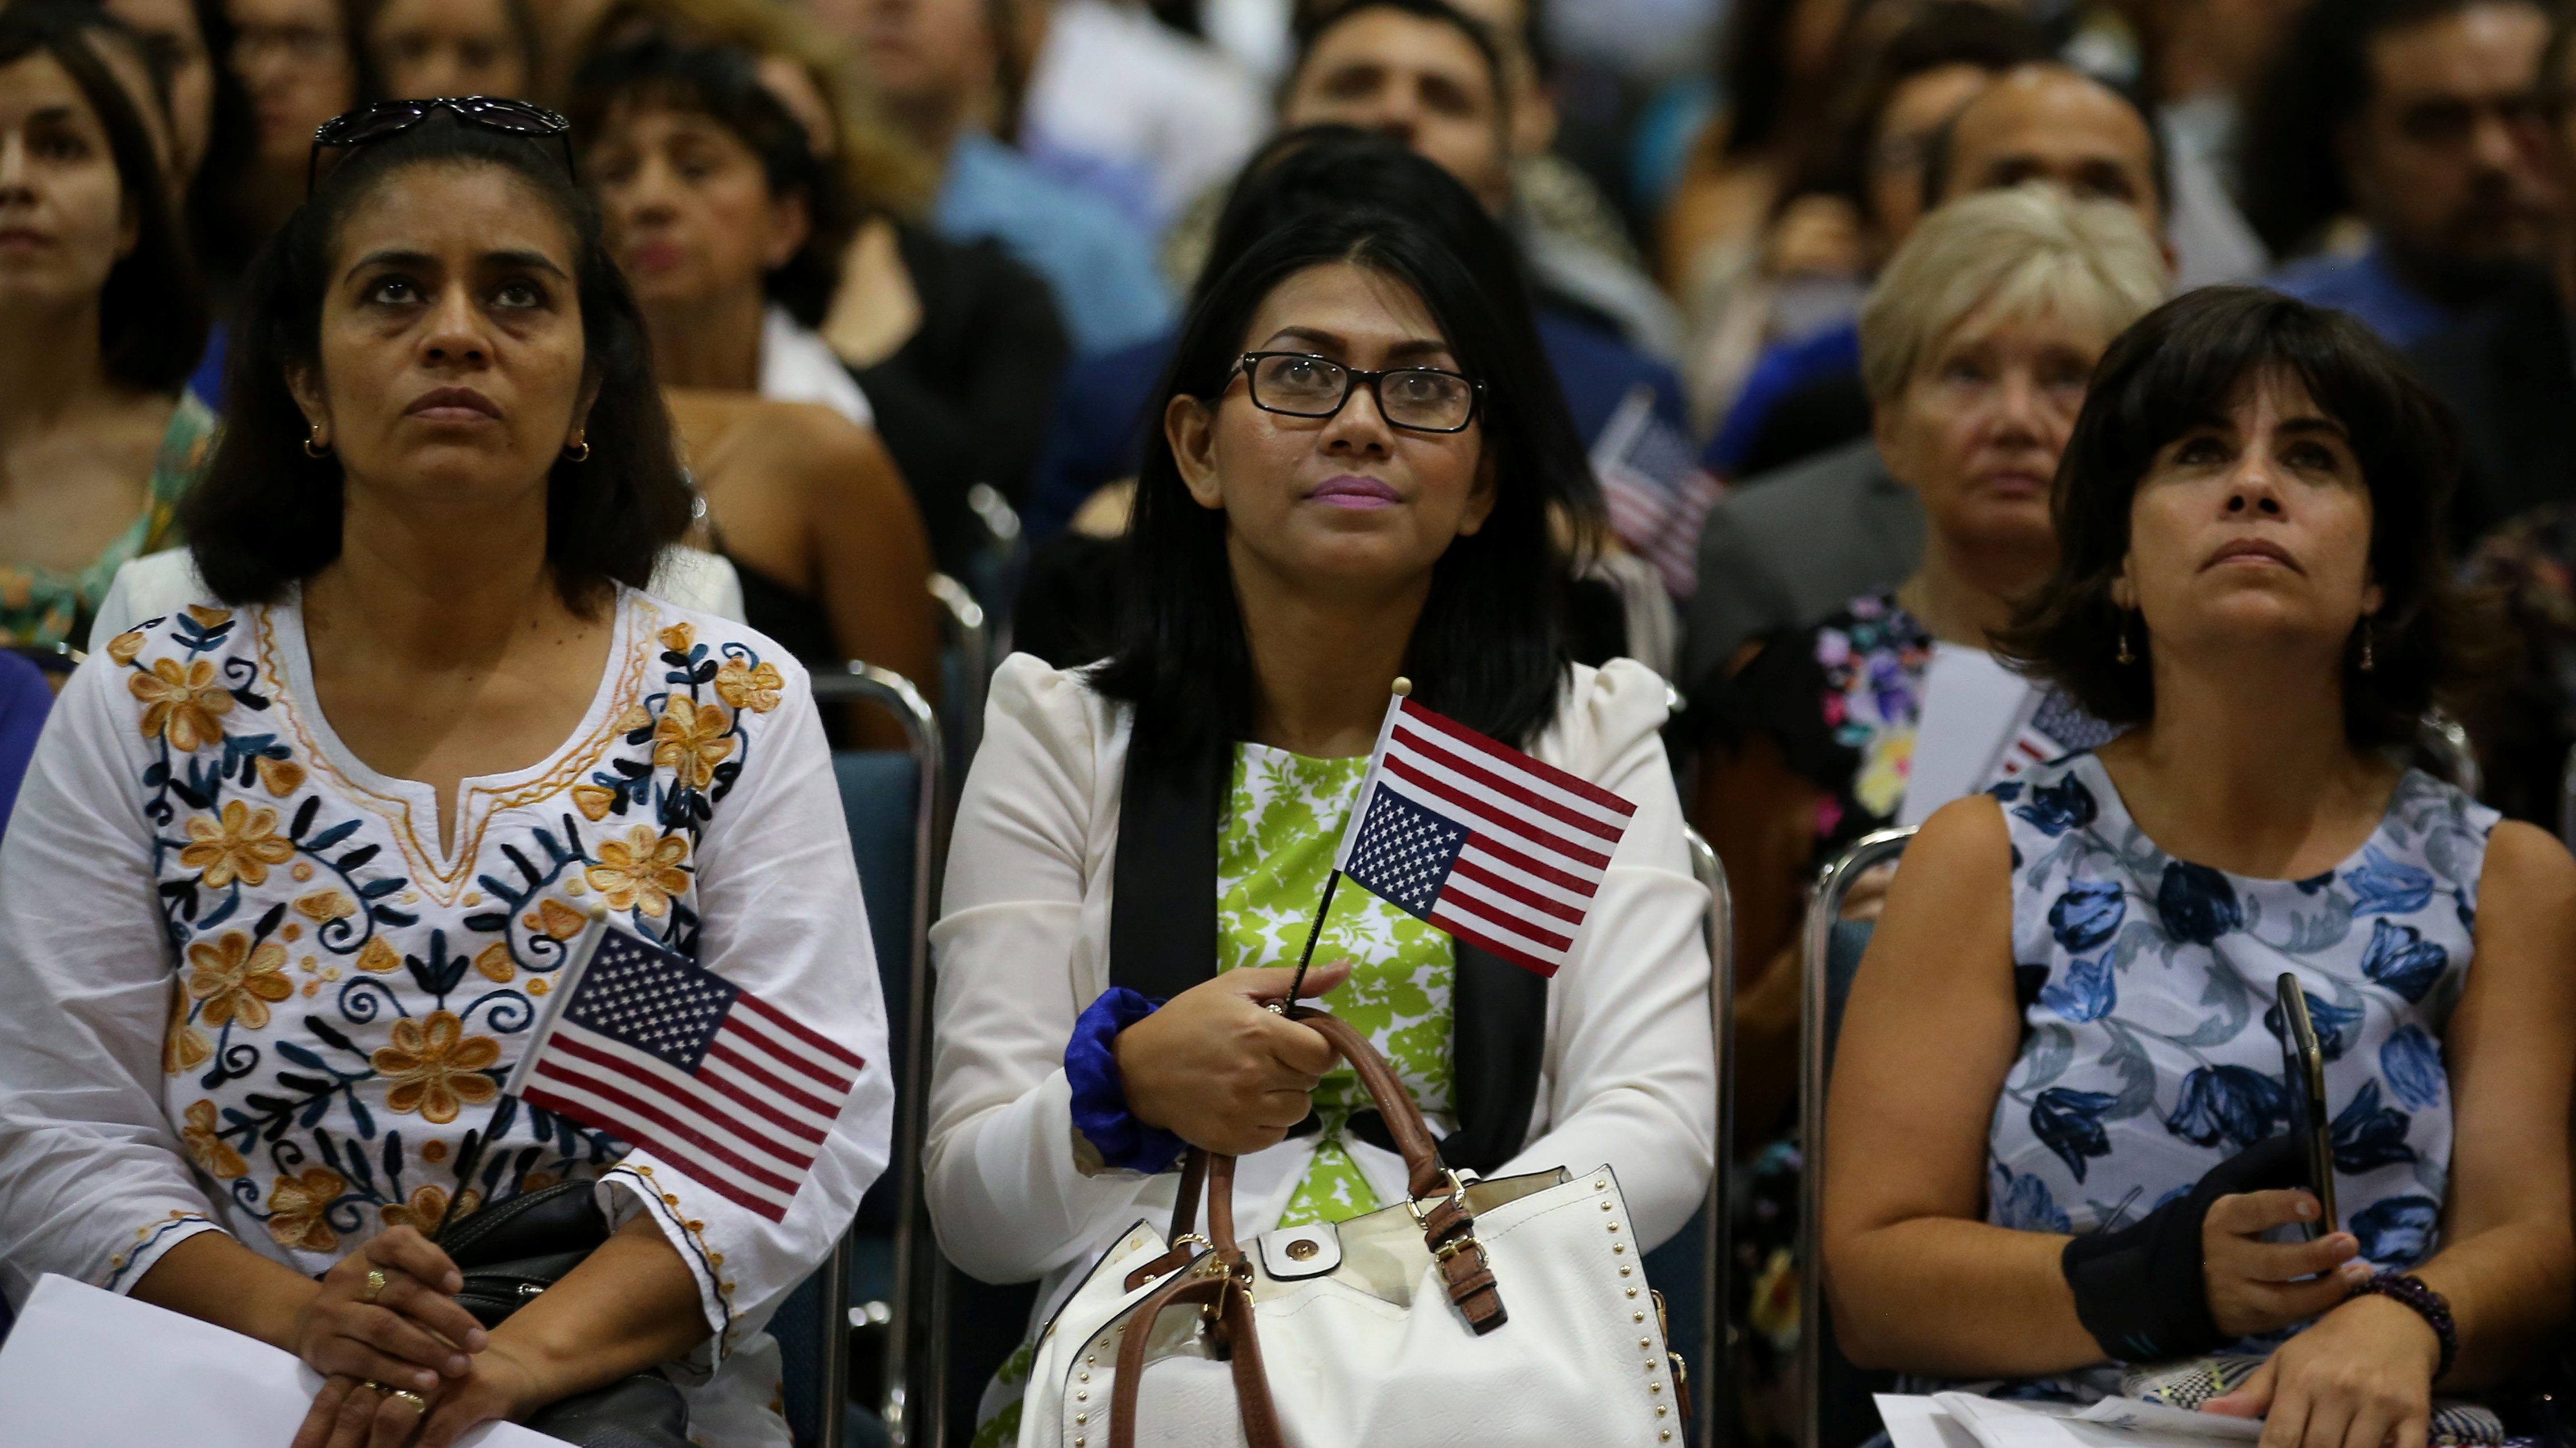 Attendees watch a video as they are sworn in as U.S. citizens at a U.S. citizenship ceremony in Los Angeles, U.S., July 18, 2017. Picture taken July 18, 2017.     REUTERS/Mike Blake - RC19F6476A60